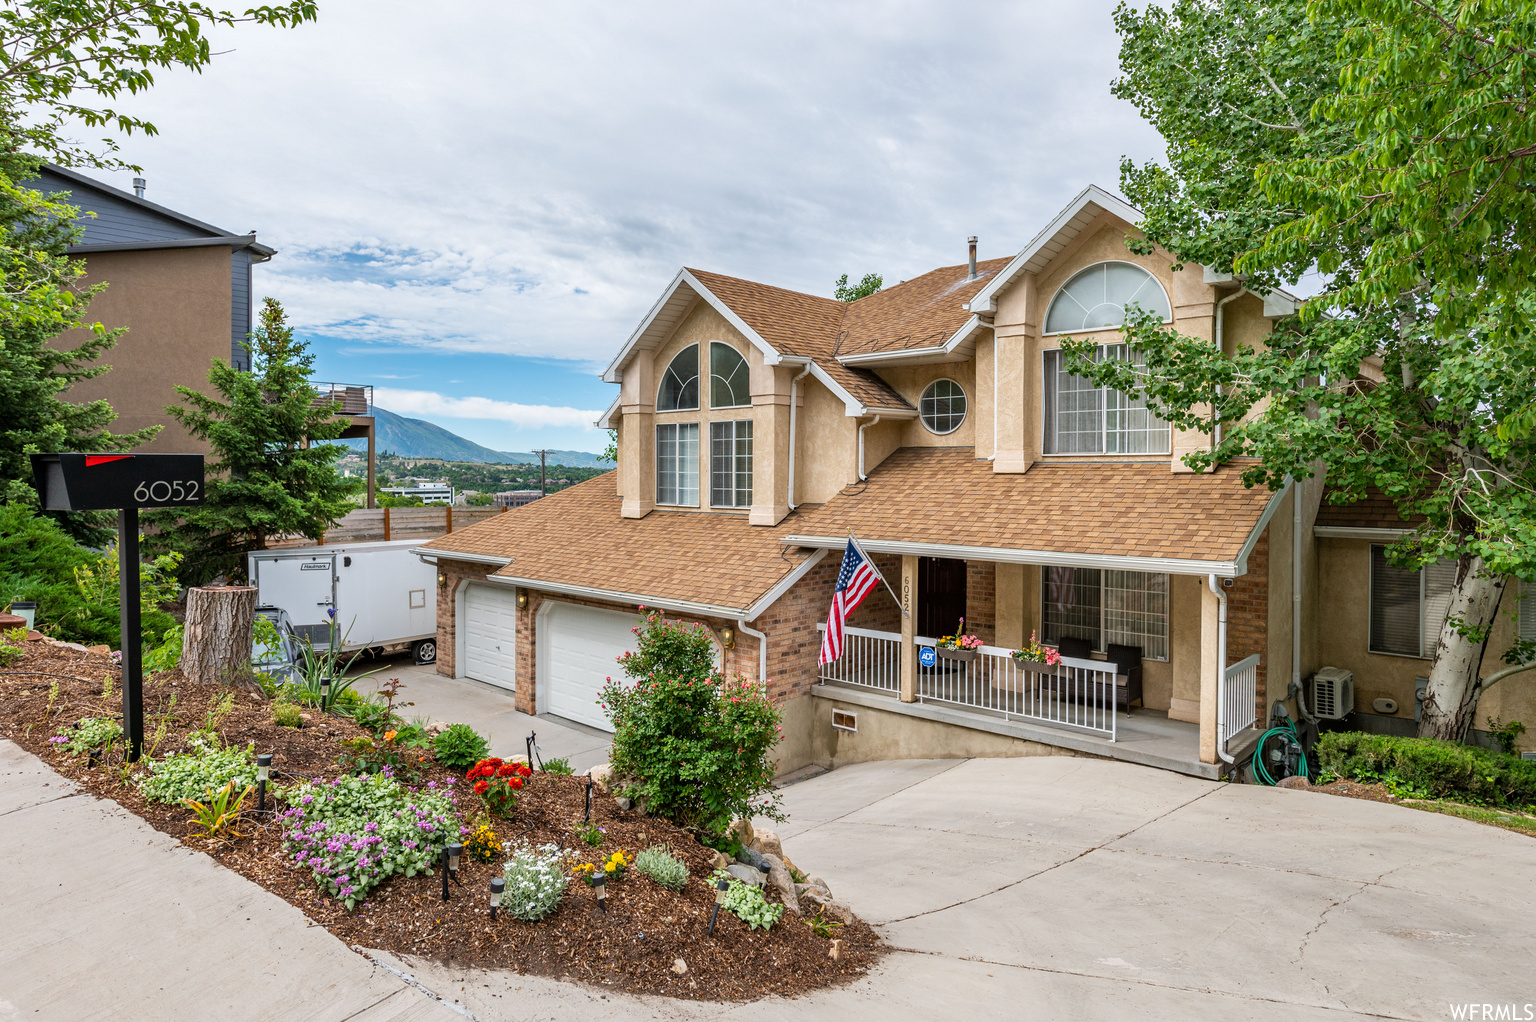 6052 S HEUGHS CANYON CT, Holladay UT 84121